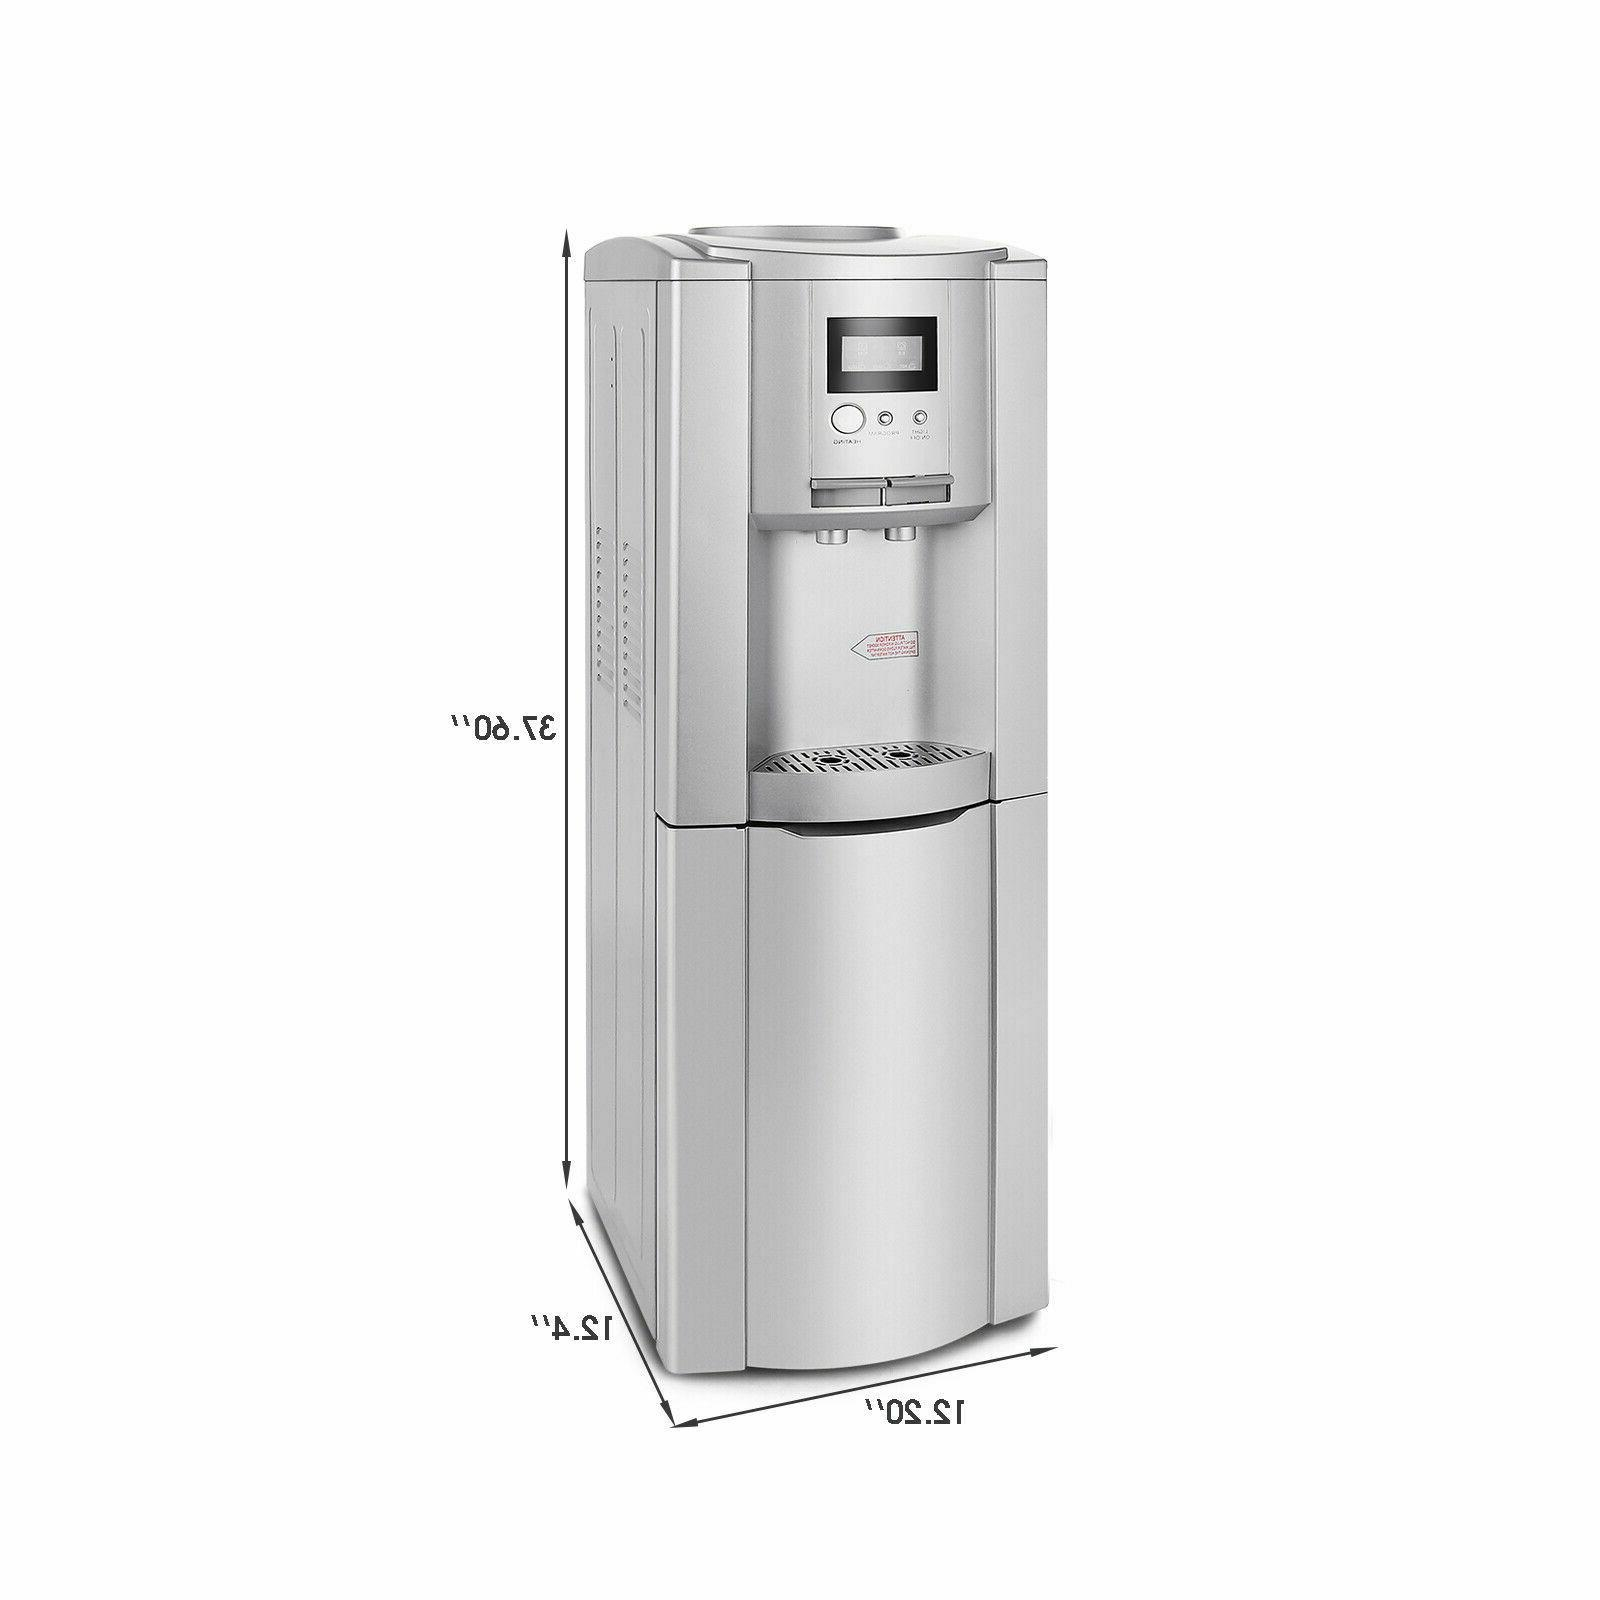 5 Water Cooler Hot Tanks Bottom Storage Cabinet